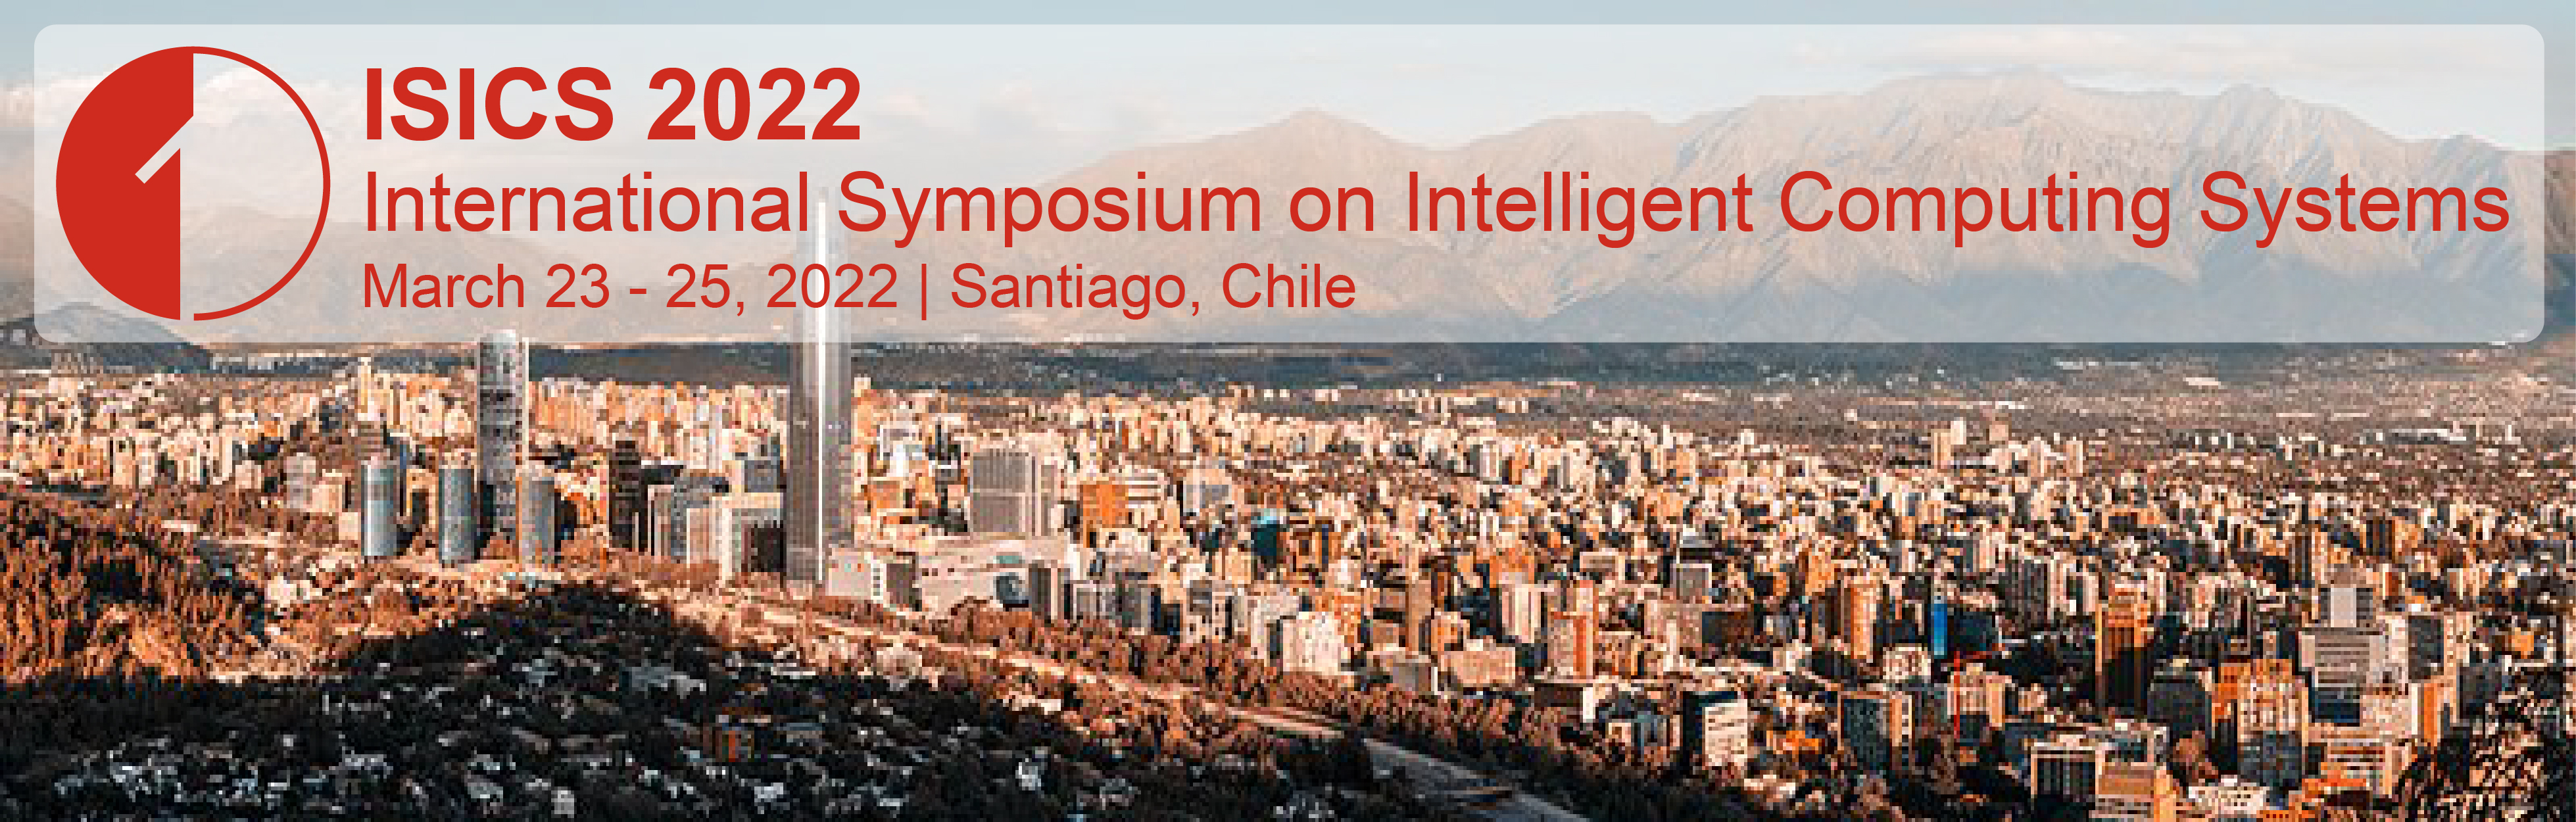 Symposium on Intelligent Computing Systems